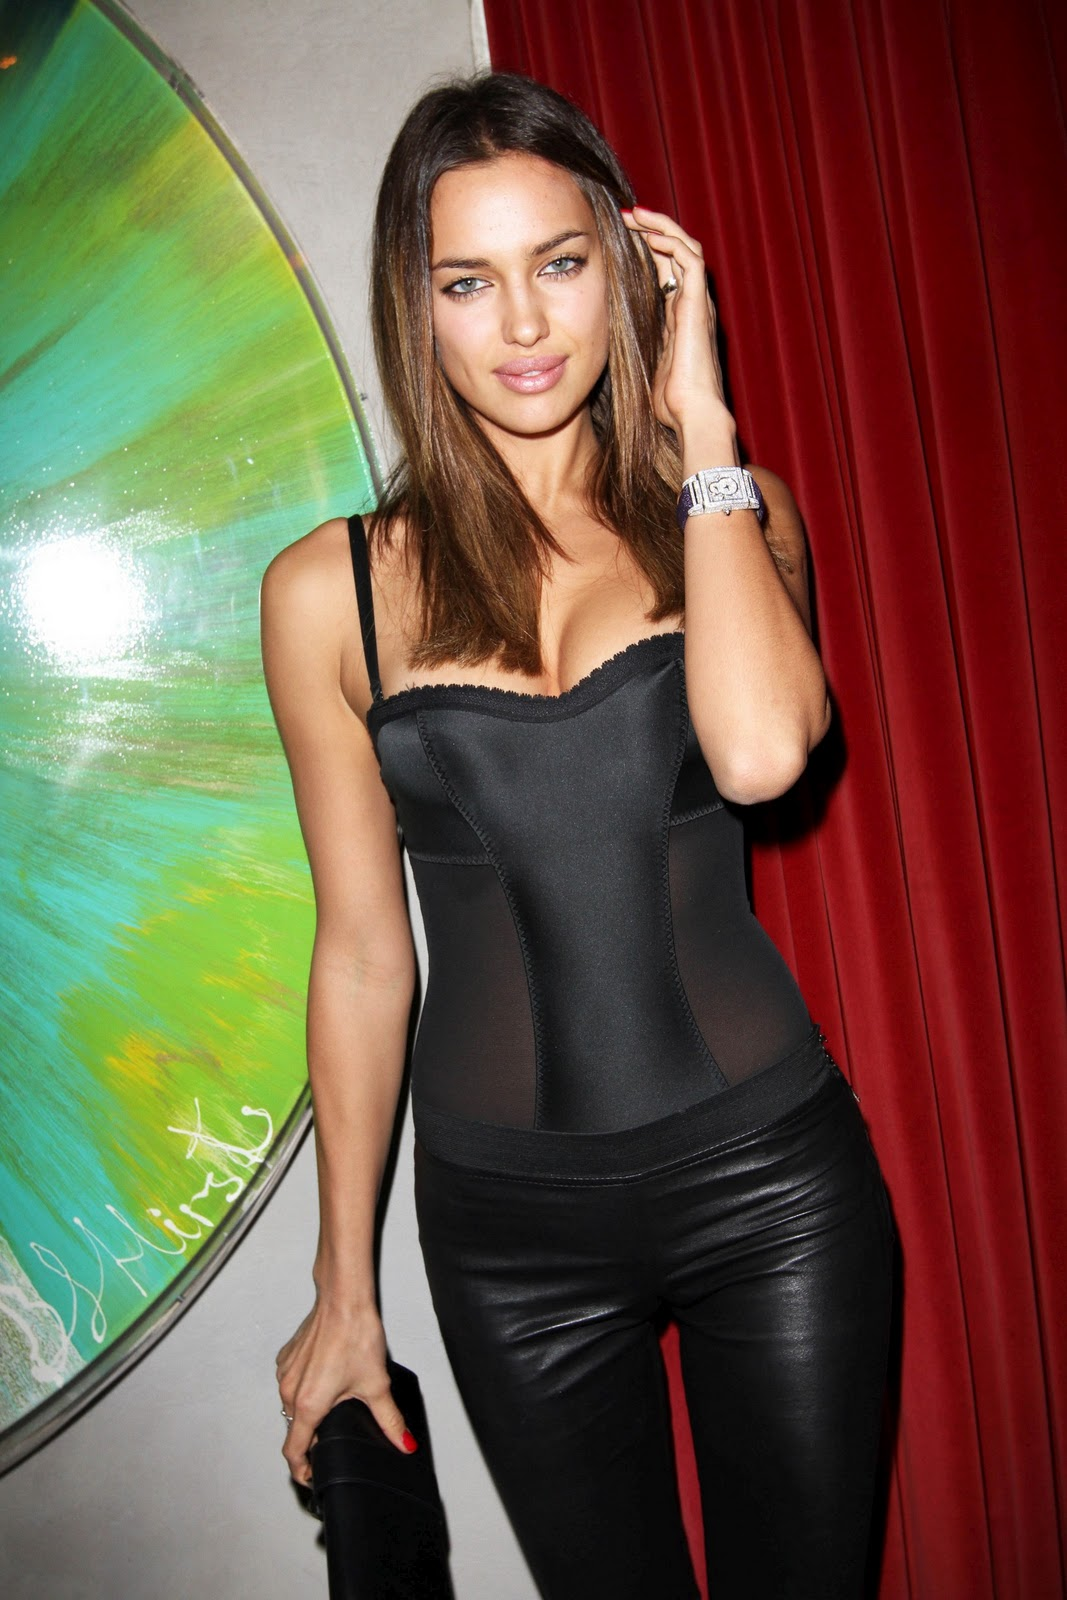 Irina Shayk La Senza Lingerie 2011: Irina Shayk (Impulse At Macy's Launch Party, NY 2011) HQ